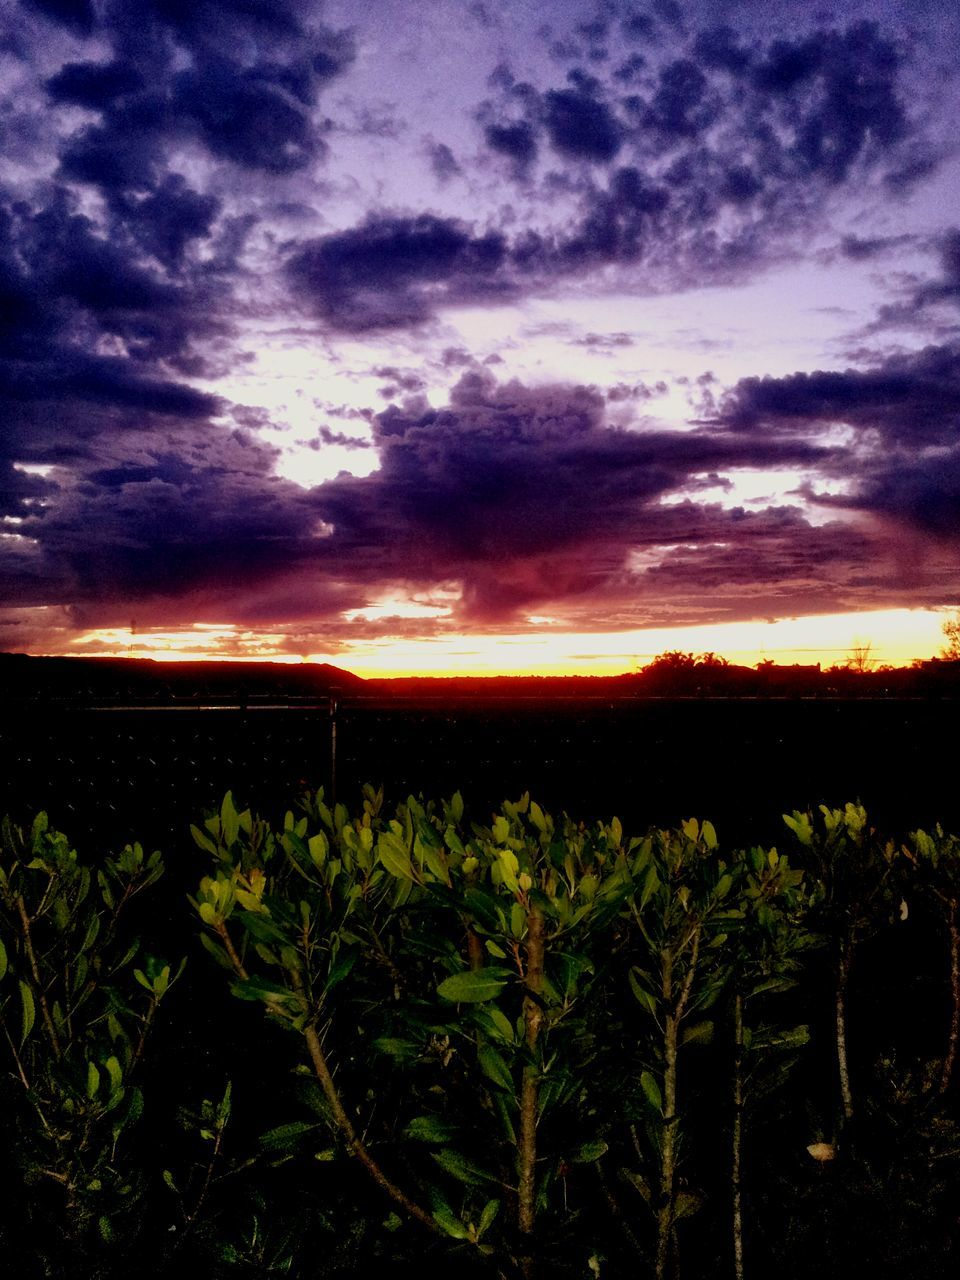 nature, agriculture, sunset, field, growth, sky, landscape, beauty in nature, farm, tranquility, scenics, tranquil scene, crop, cloud - sky, plant, rural scene, no people, silhouette, outdoors, tree, day